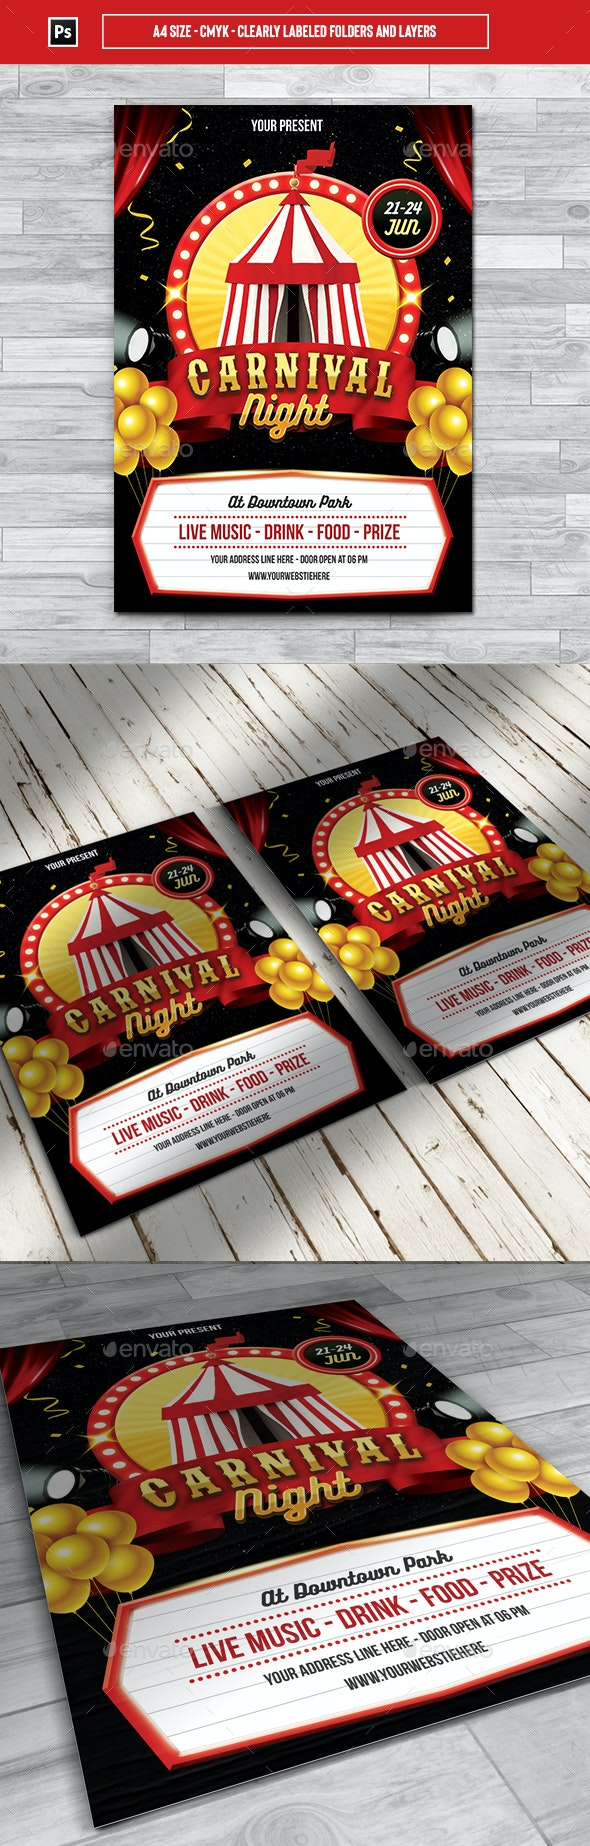 Carnival Night Flyer Template - Events Flyers